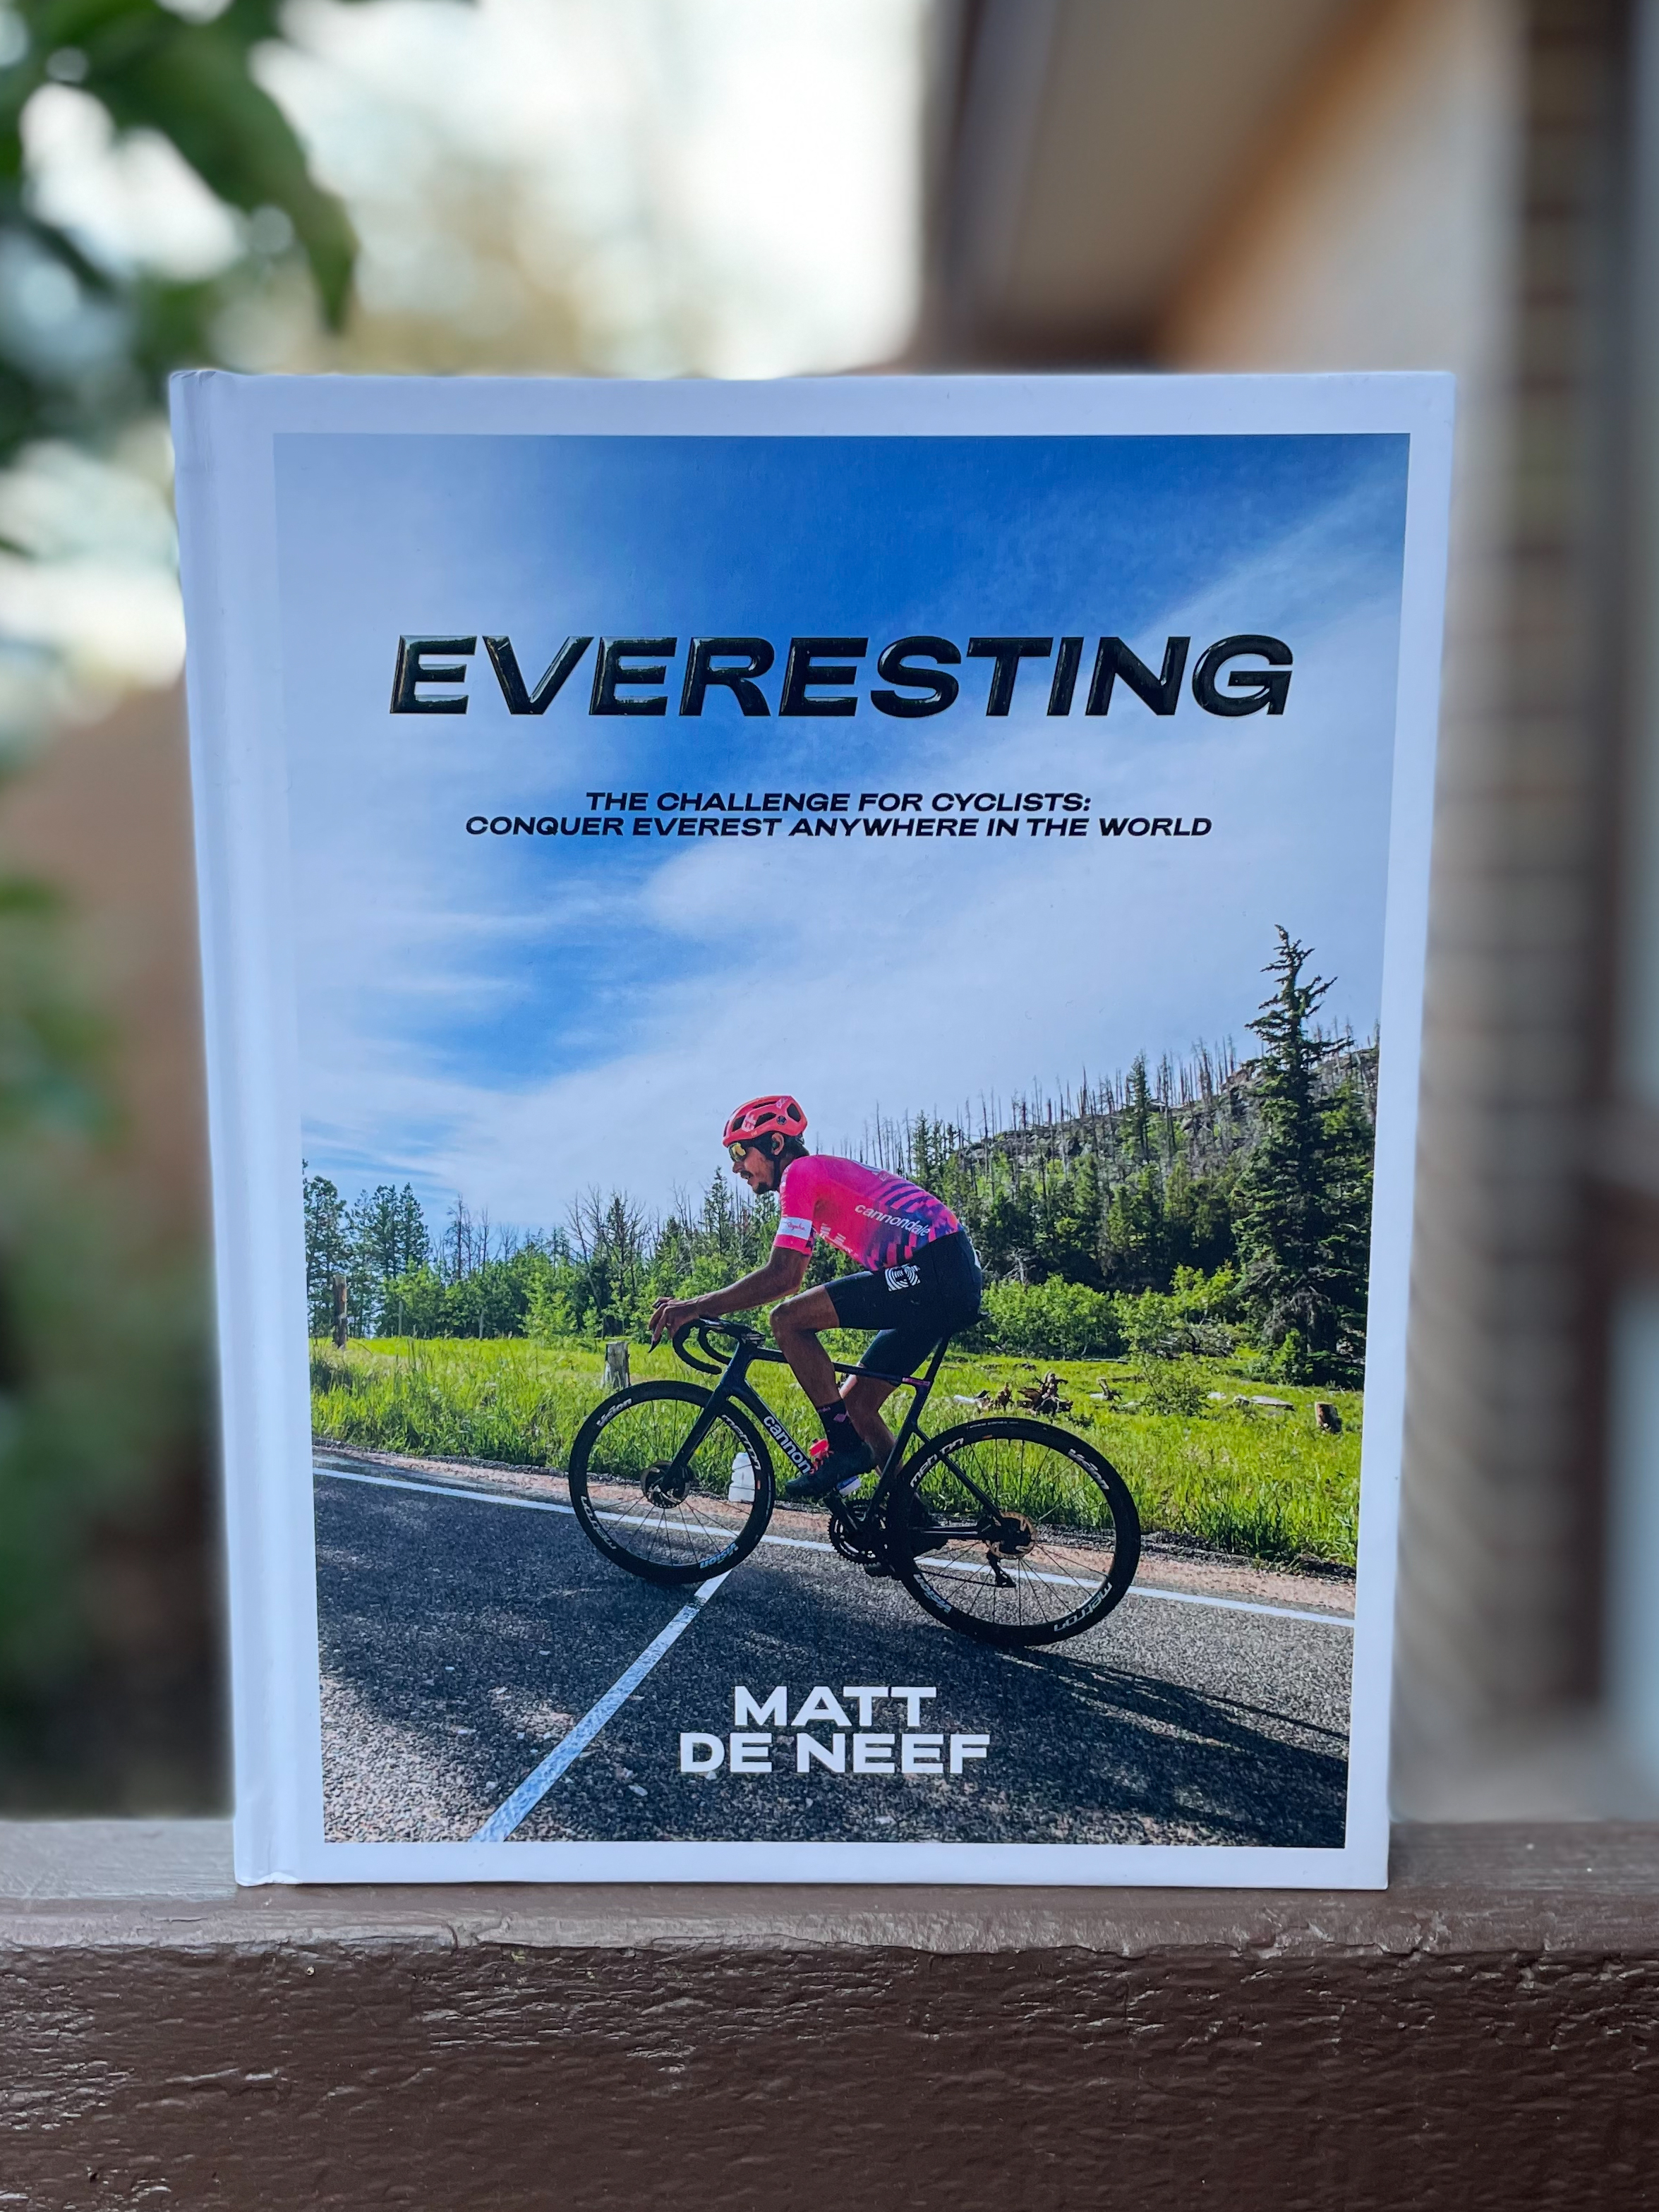 The cover of the book Everesting by Matt de Neef.